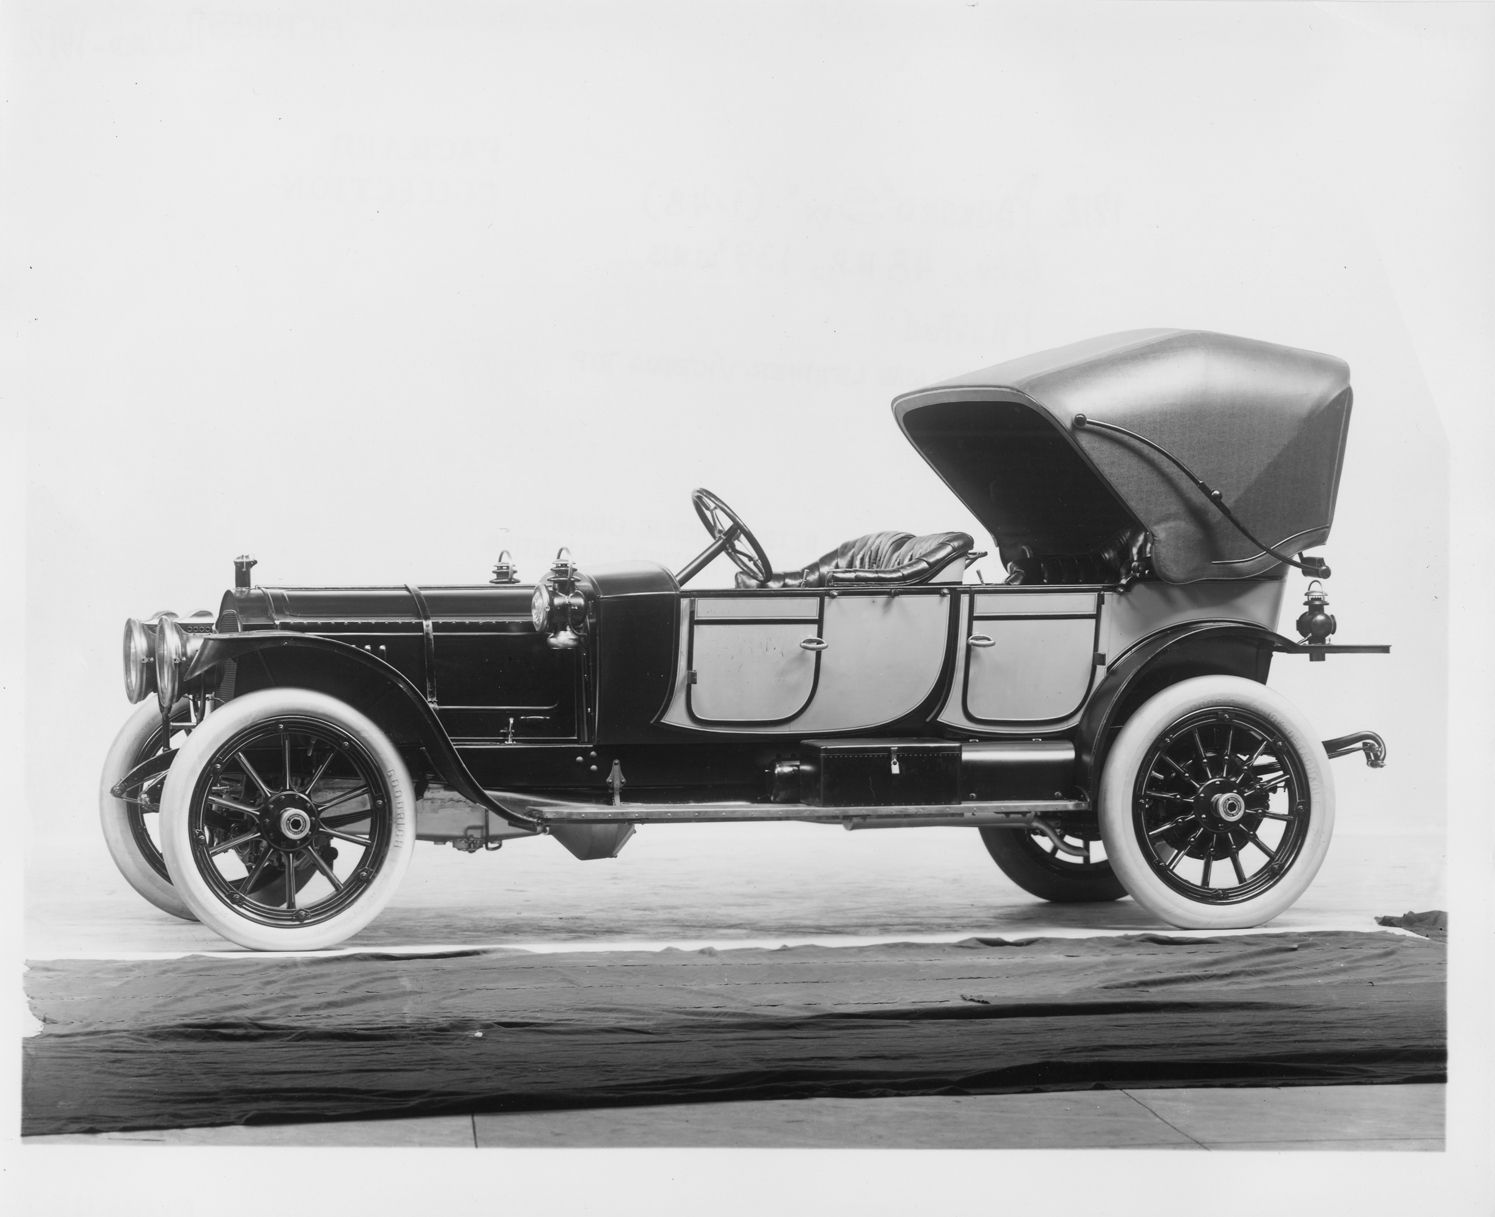 1912 Packard 6 two-toned phaeton, 6-cylinder, 48-horsepower, 139-inch wheelbase, fitted with leather victoria top.